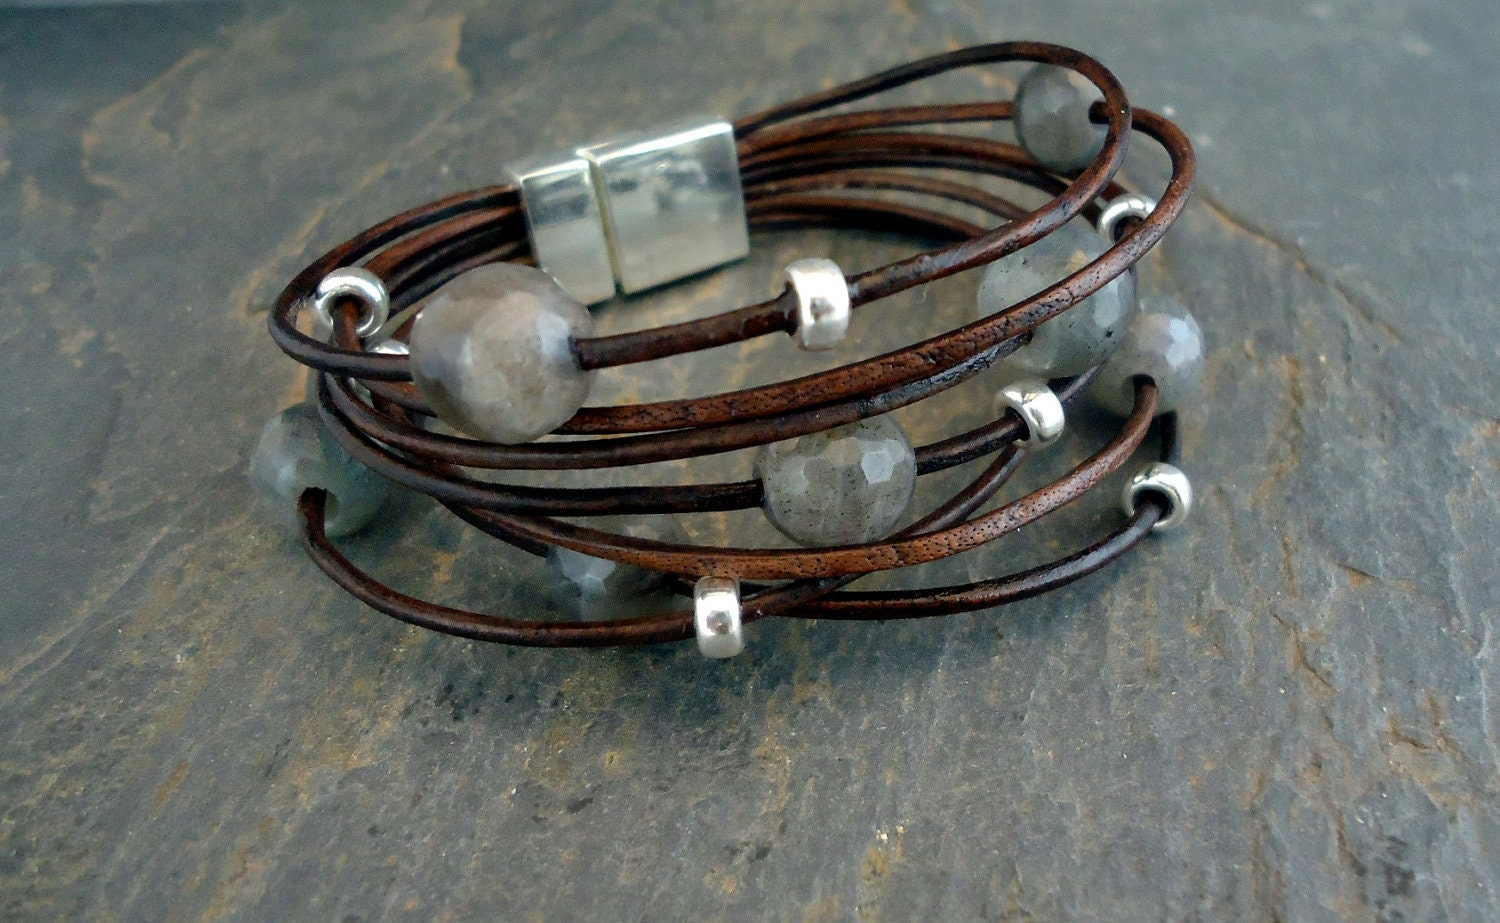 Labradorite,Sterling,Silver,and,Leather,Bracelet,Jewelry,leather,leather_bracelet,sterling_silver,labradorite_bracelet,leather_cuff,iseadesigns,sterling__bracelet,silver_bracelet,sterling silver,labradorite,metal